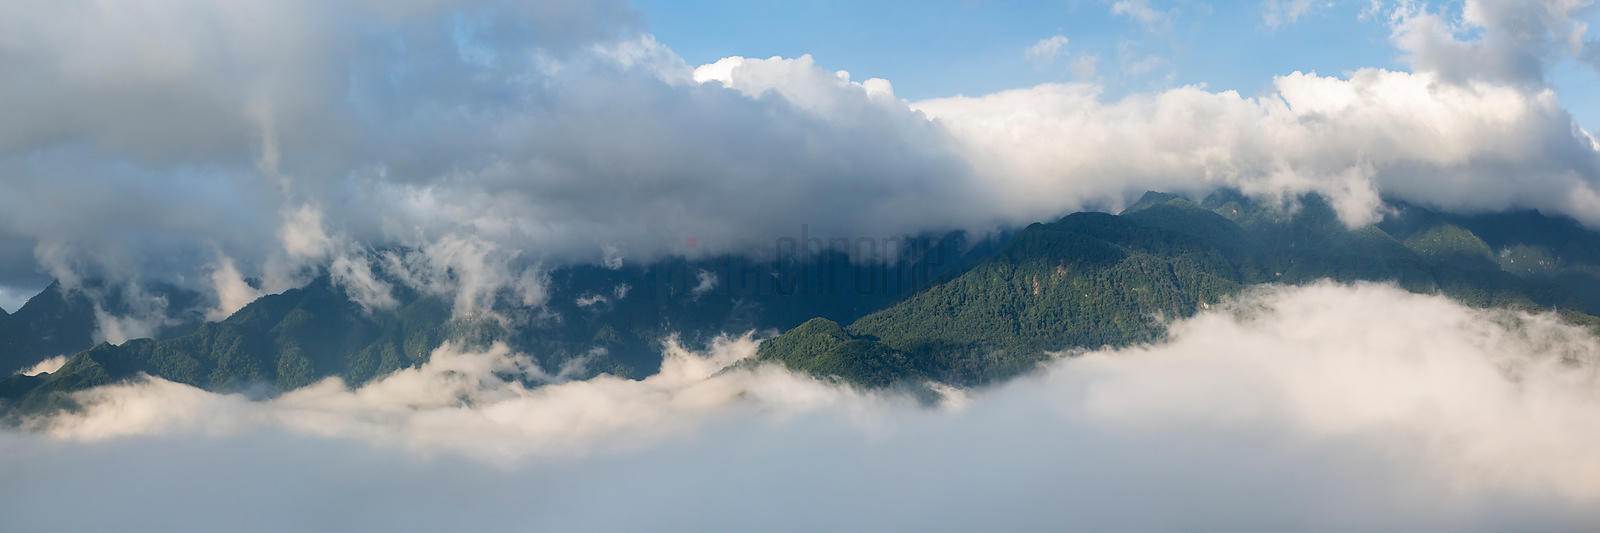 Sapa Valley with Morning Fog.